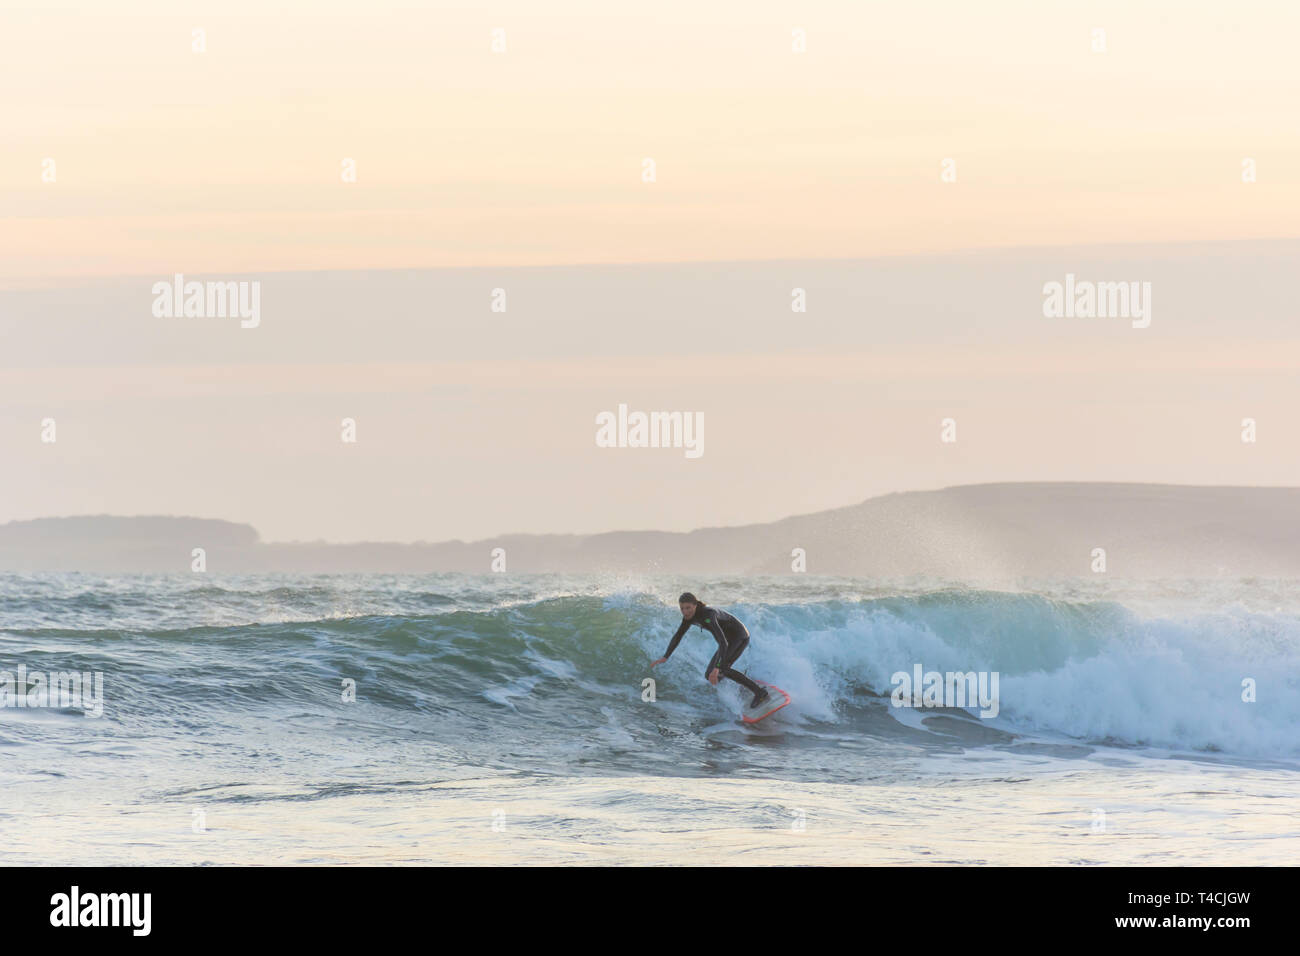 Tenby, Pembrokeshire/UK.04.18.2018-Surfer riding the wave in rough sea during sunset.Healthy, active lifestyle, extreme sport.Recreational pursuit. - Stock Image